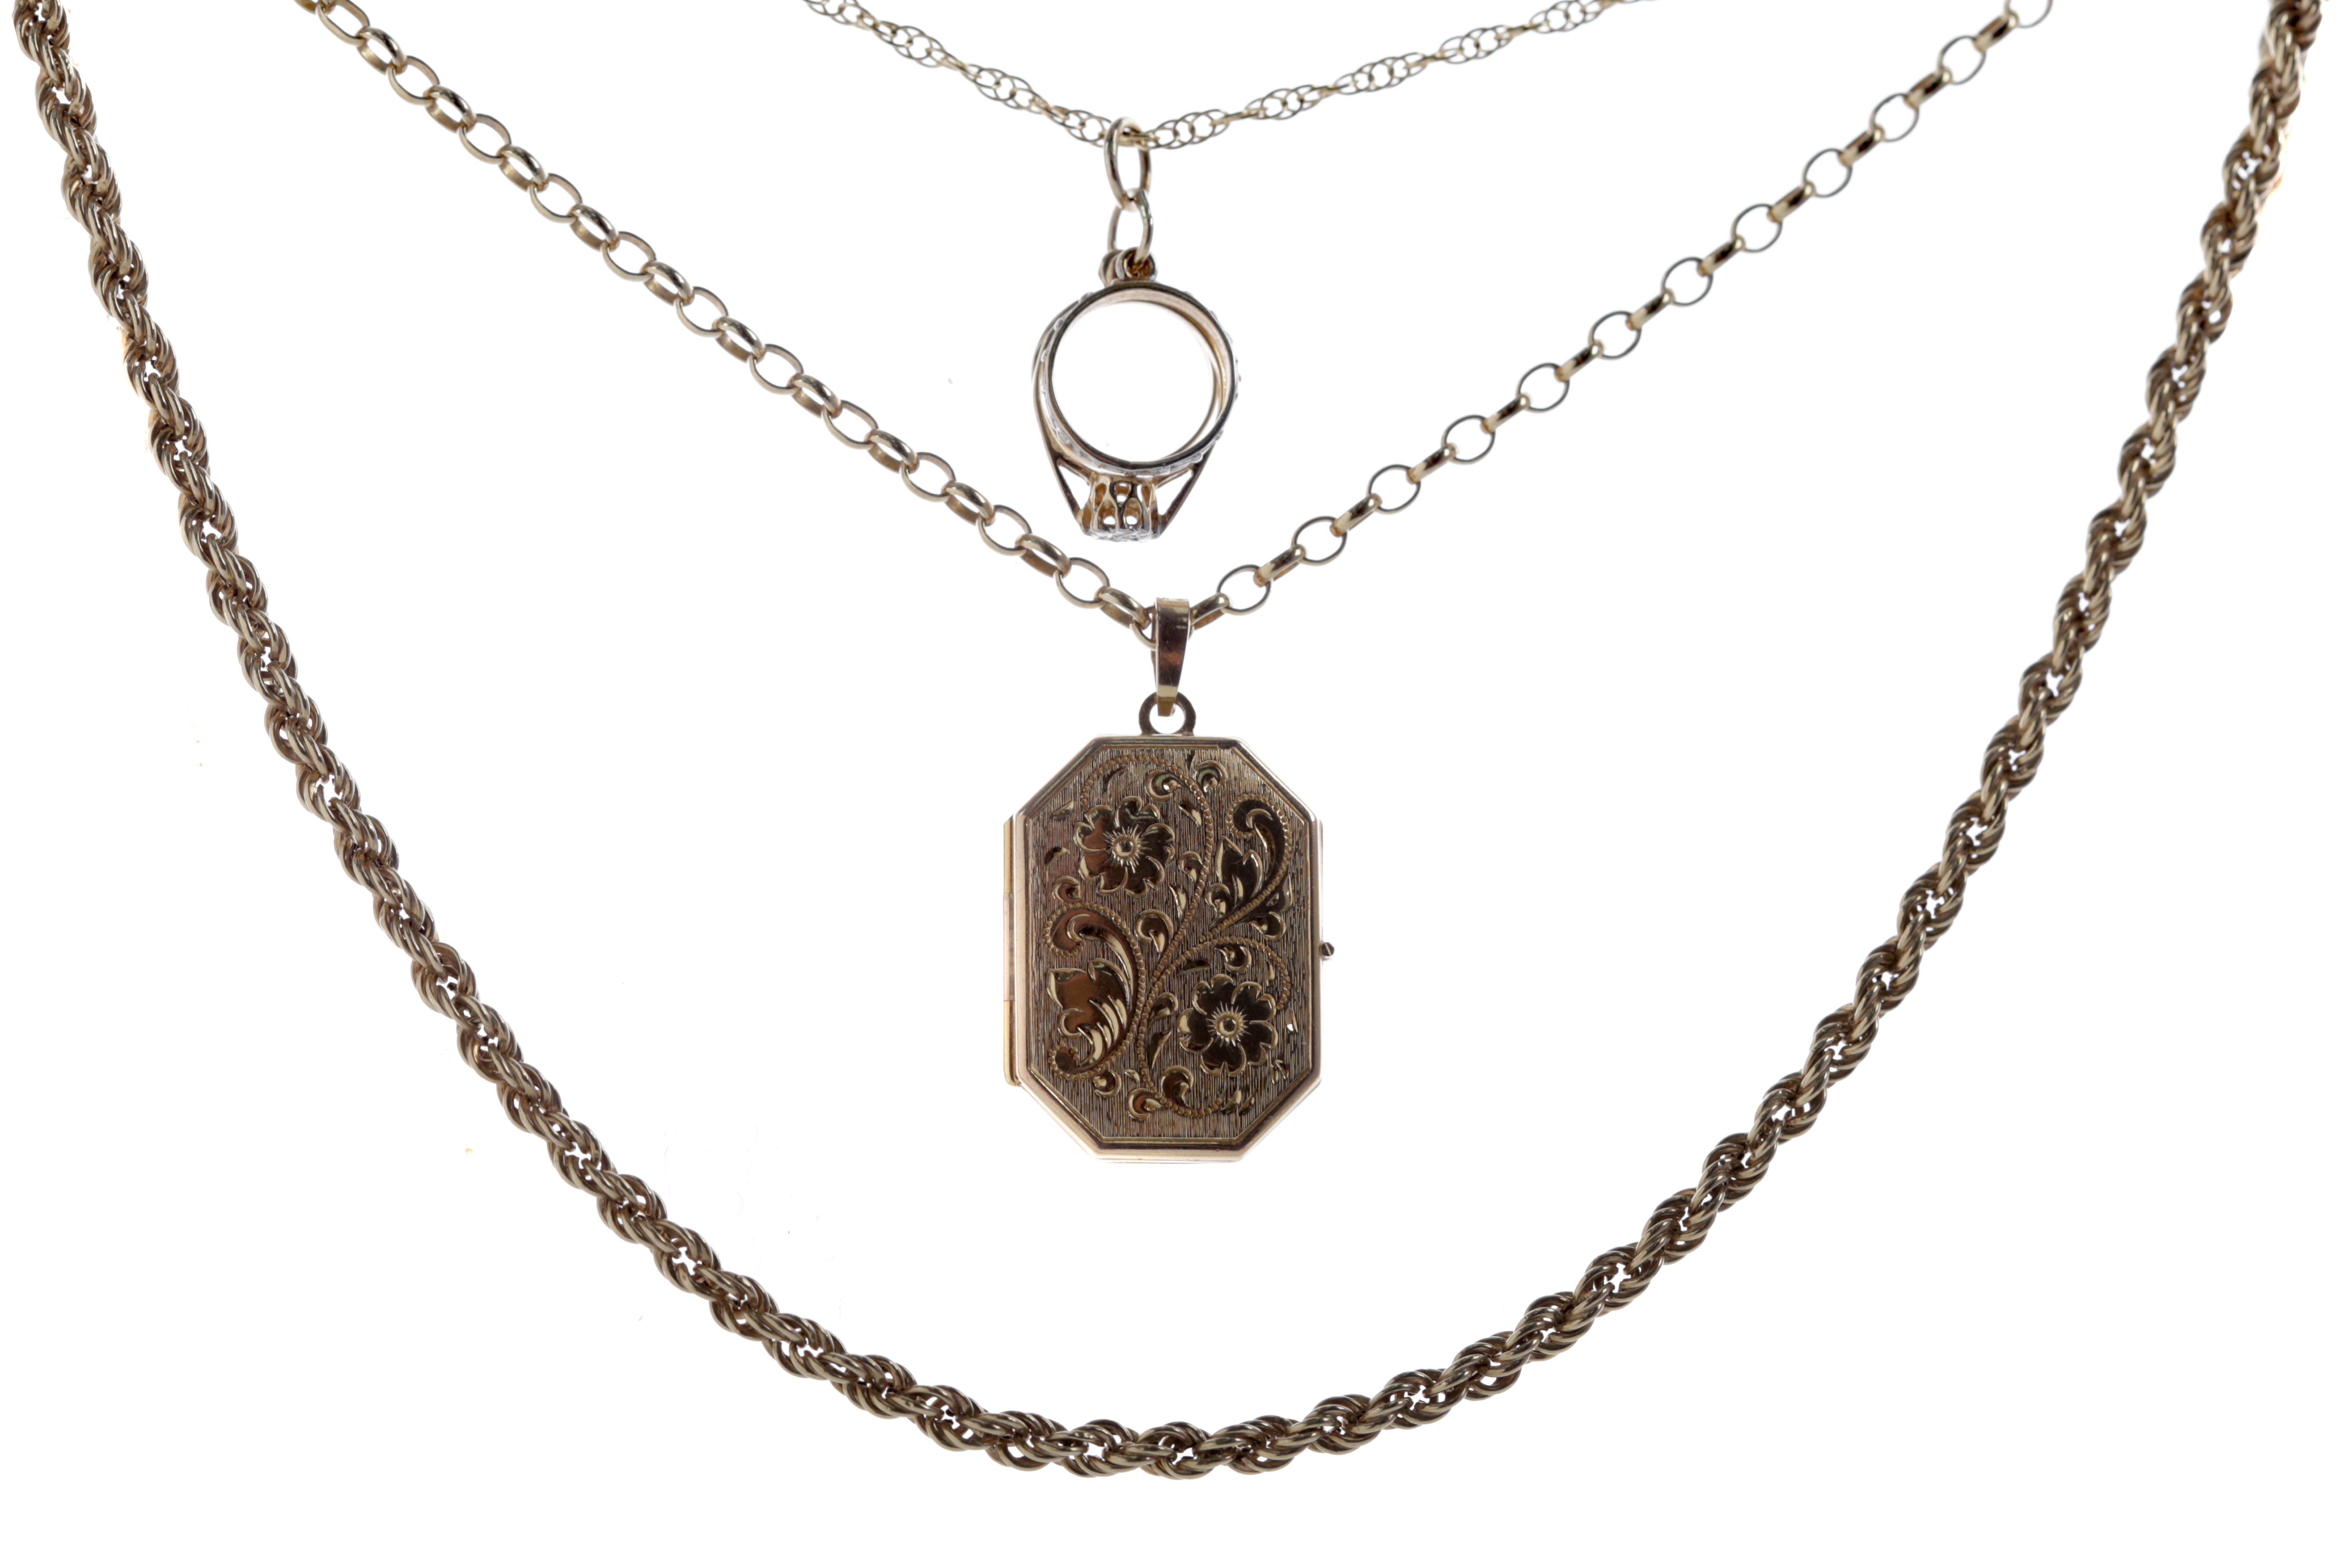 A GROUP OF GOLD CHAINS AND PENDANTS